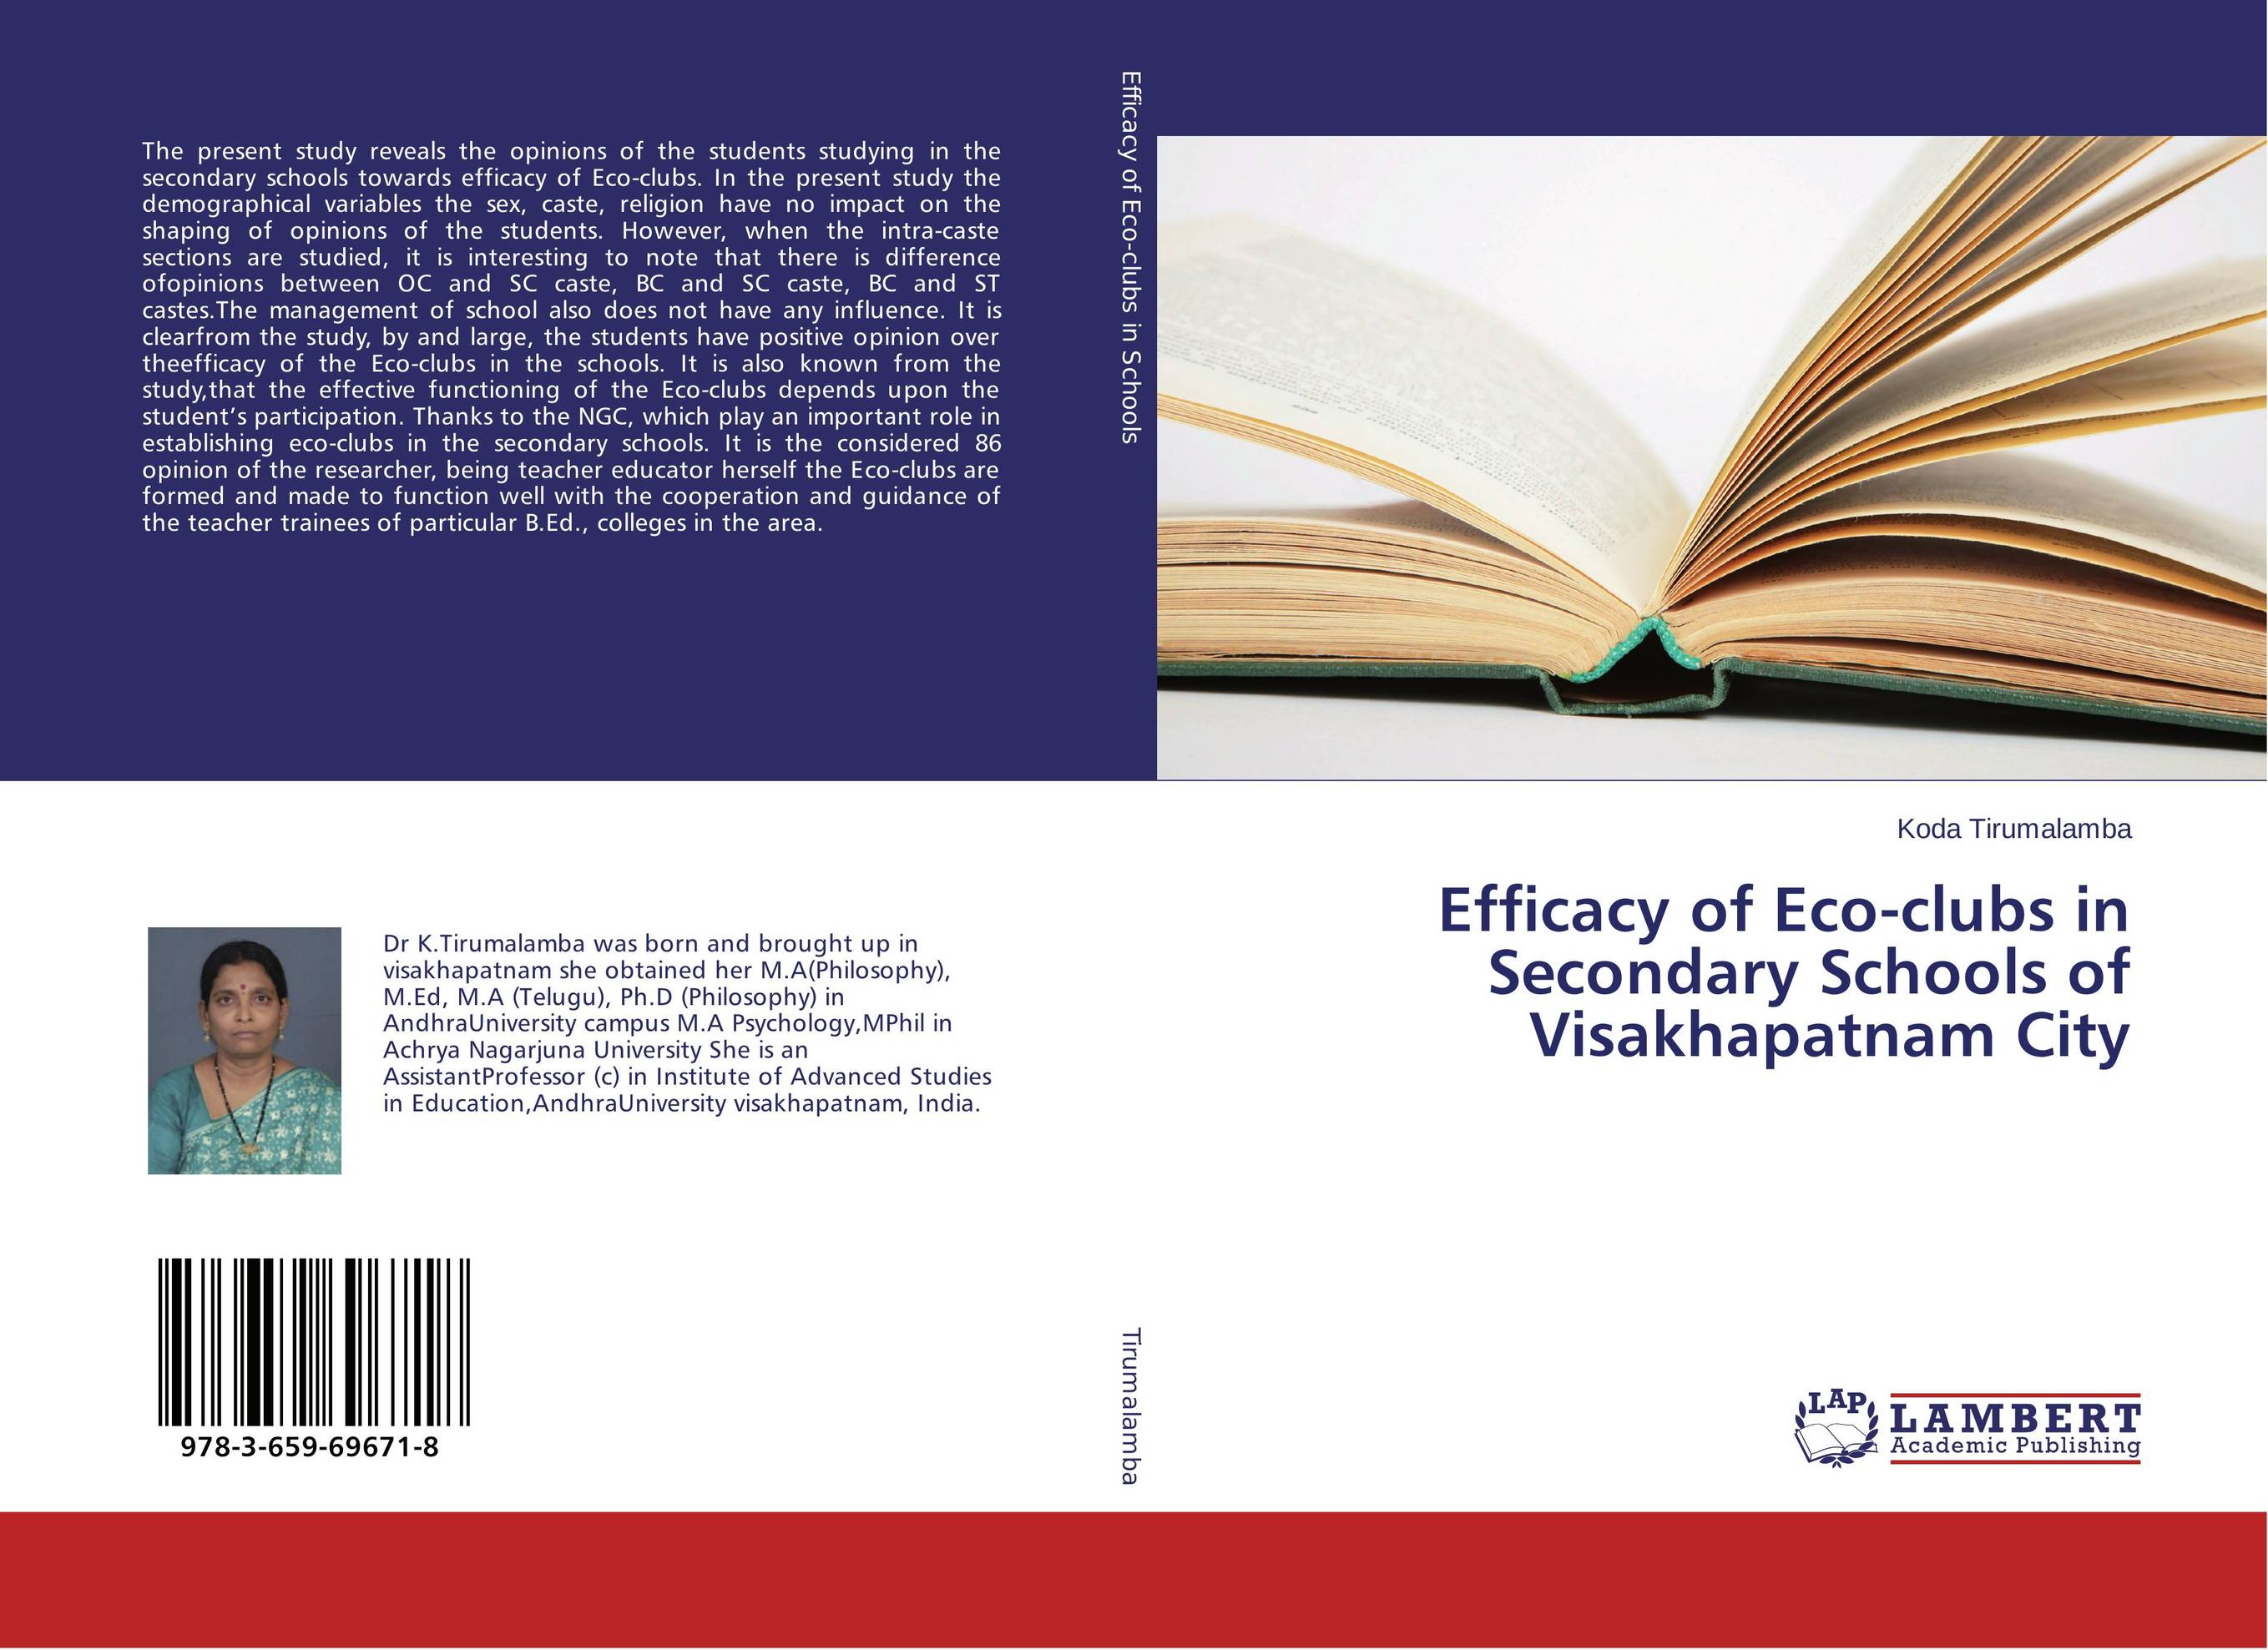 Efficacy of Eco-clubs in Secondary Schools of Visakhapatnam City the lighye caste system